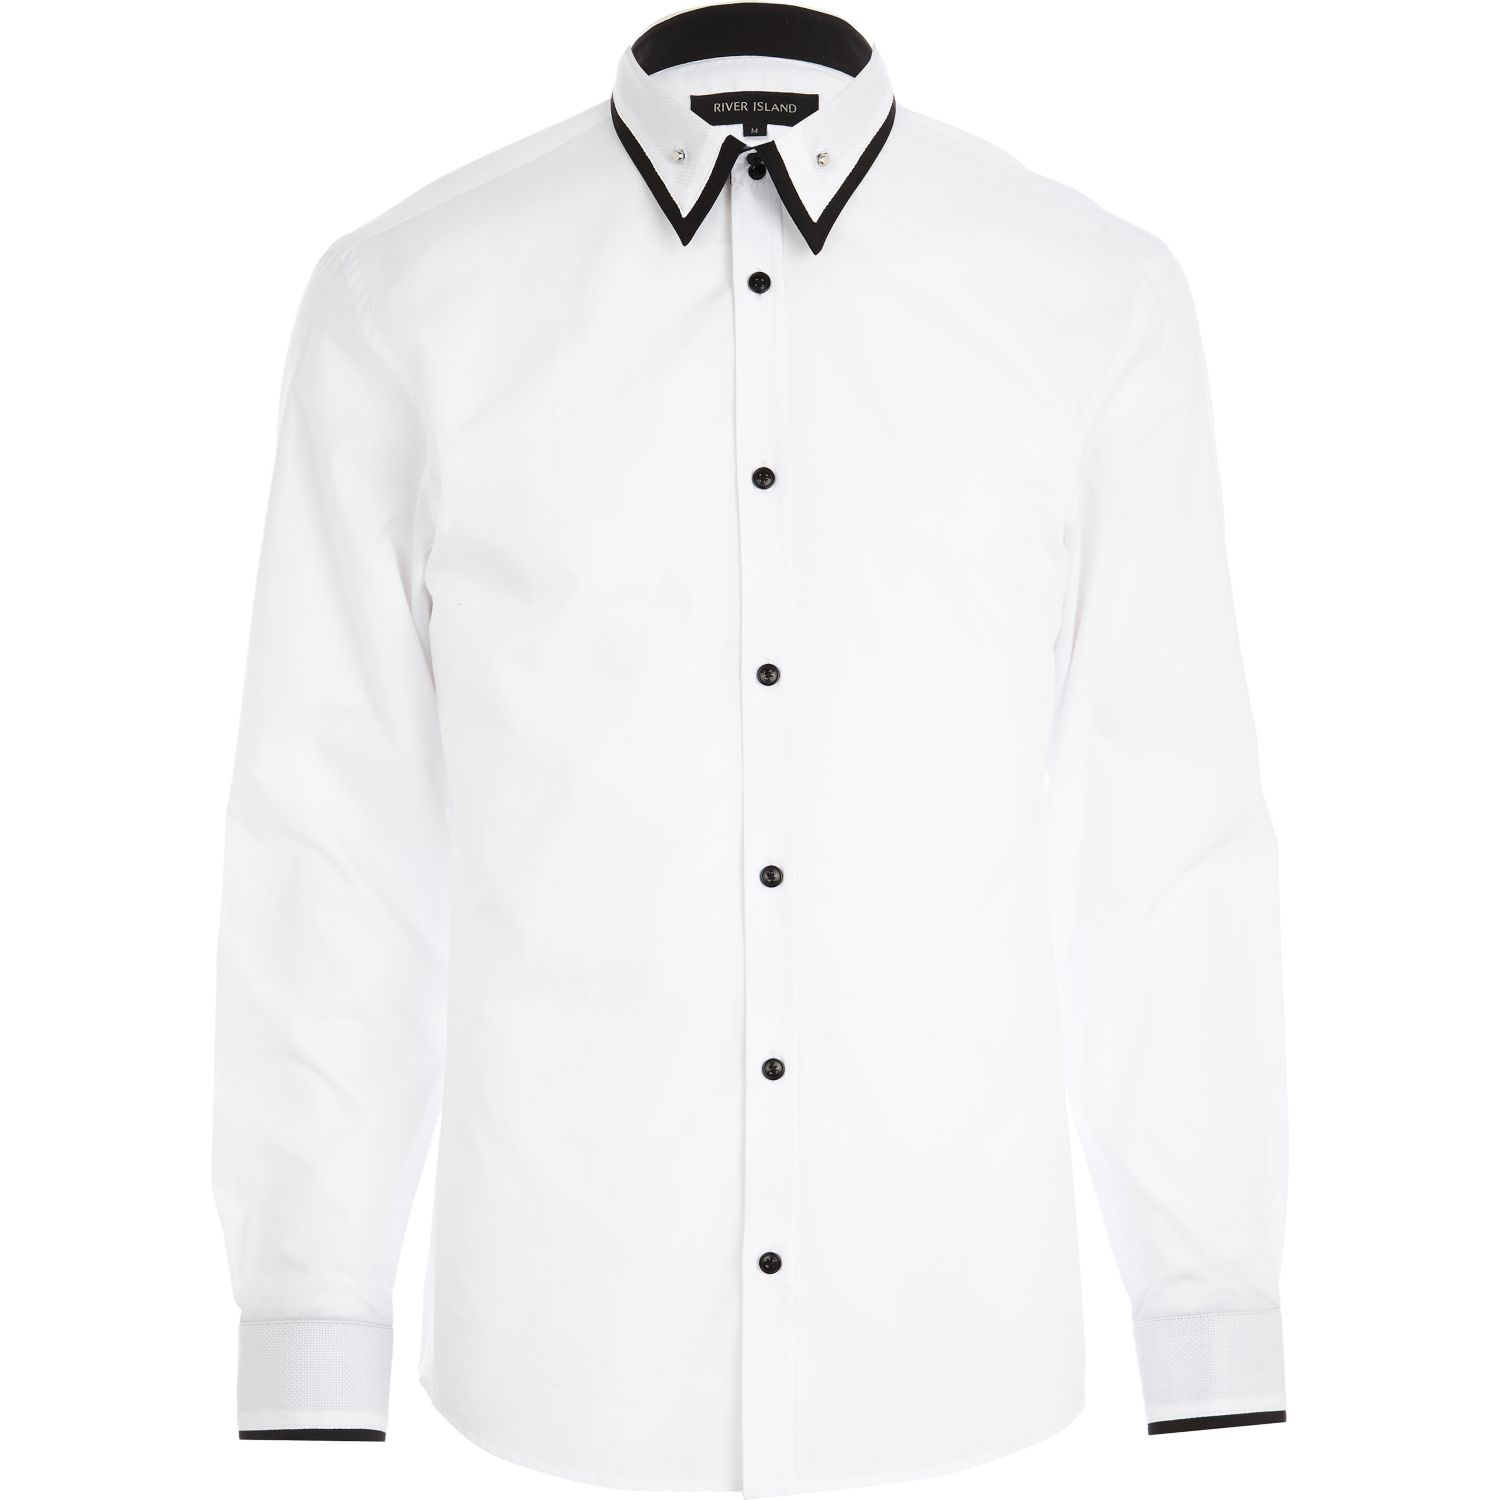 White Shirt With Buttons | Artee Shirt